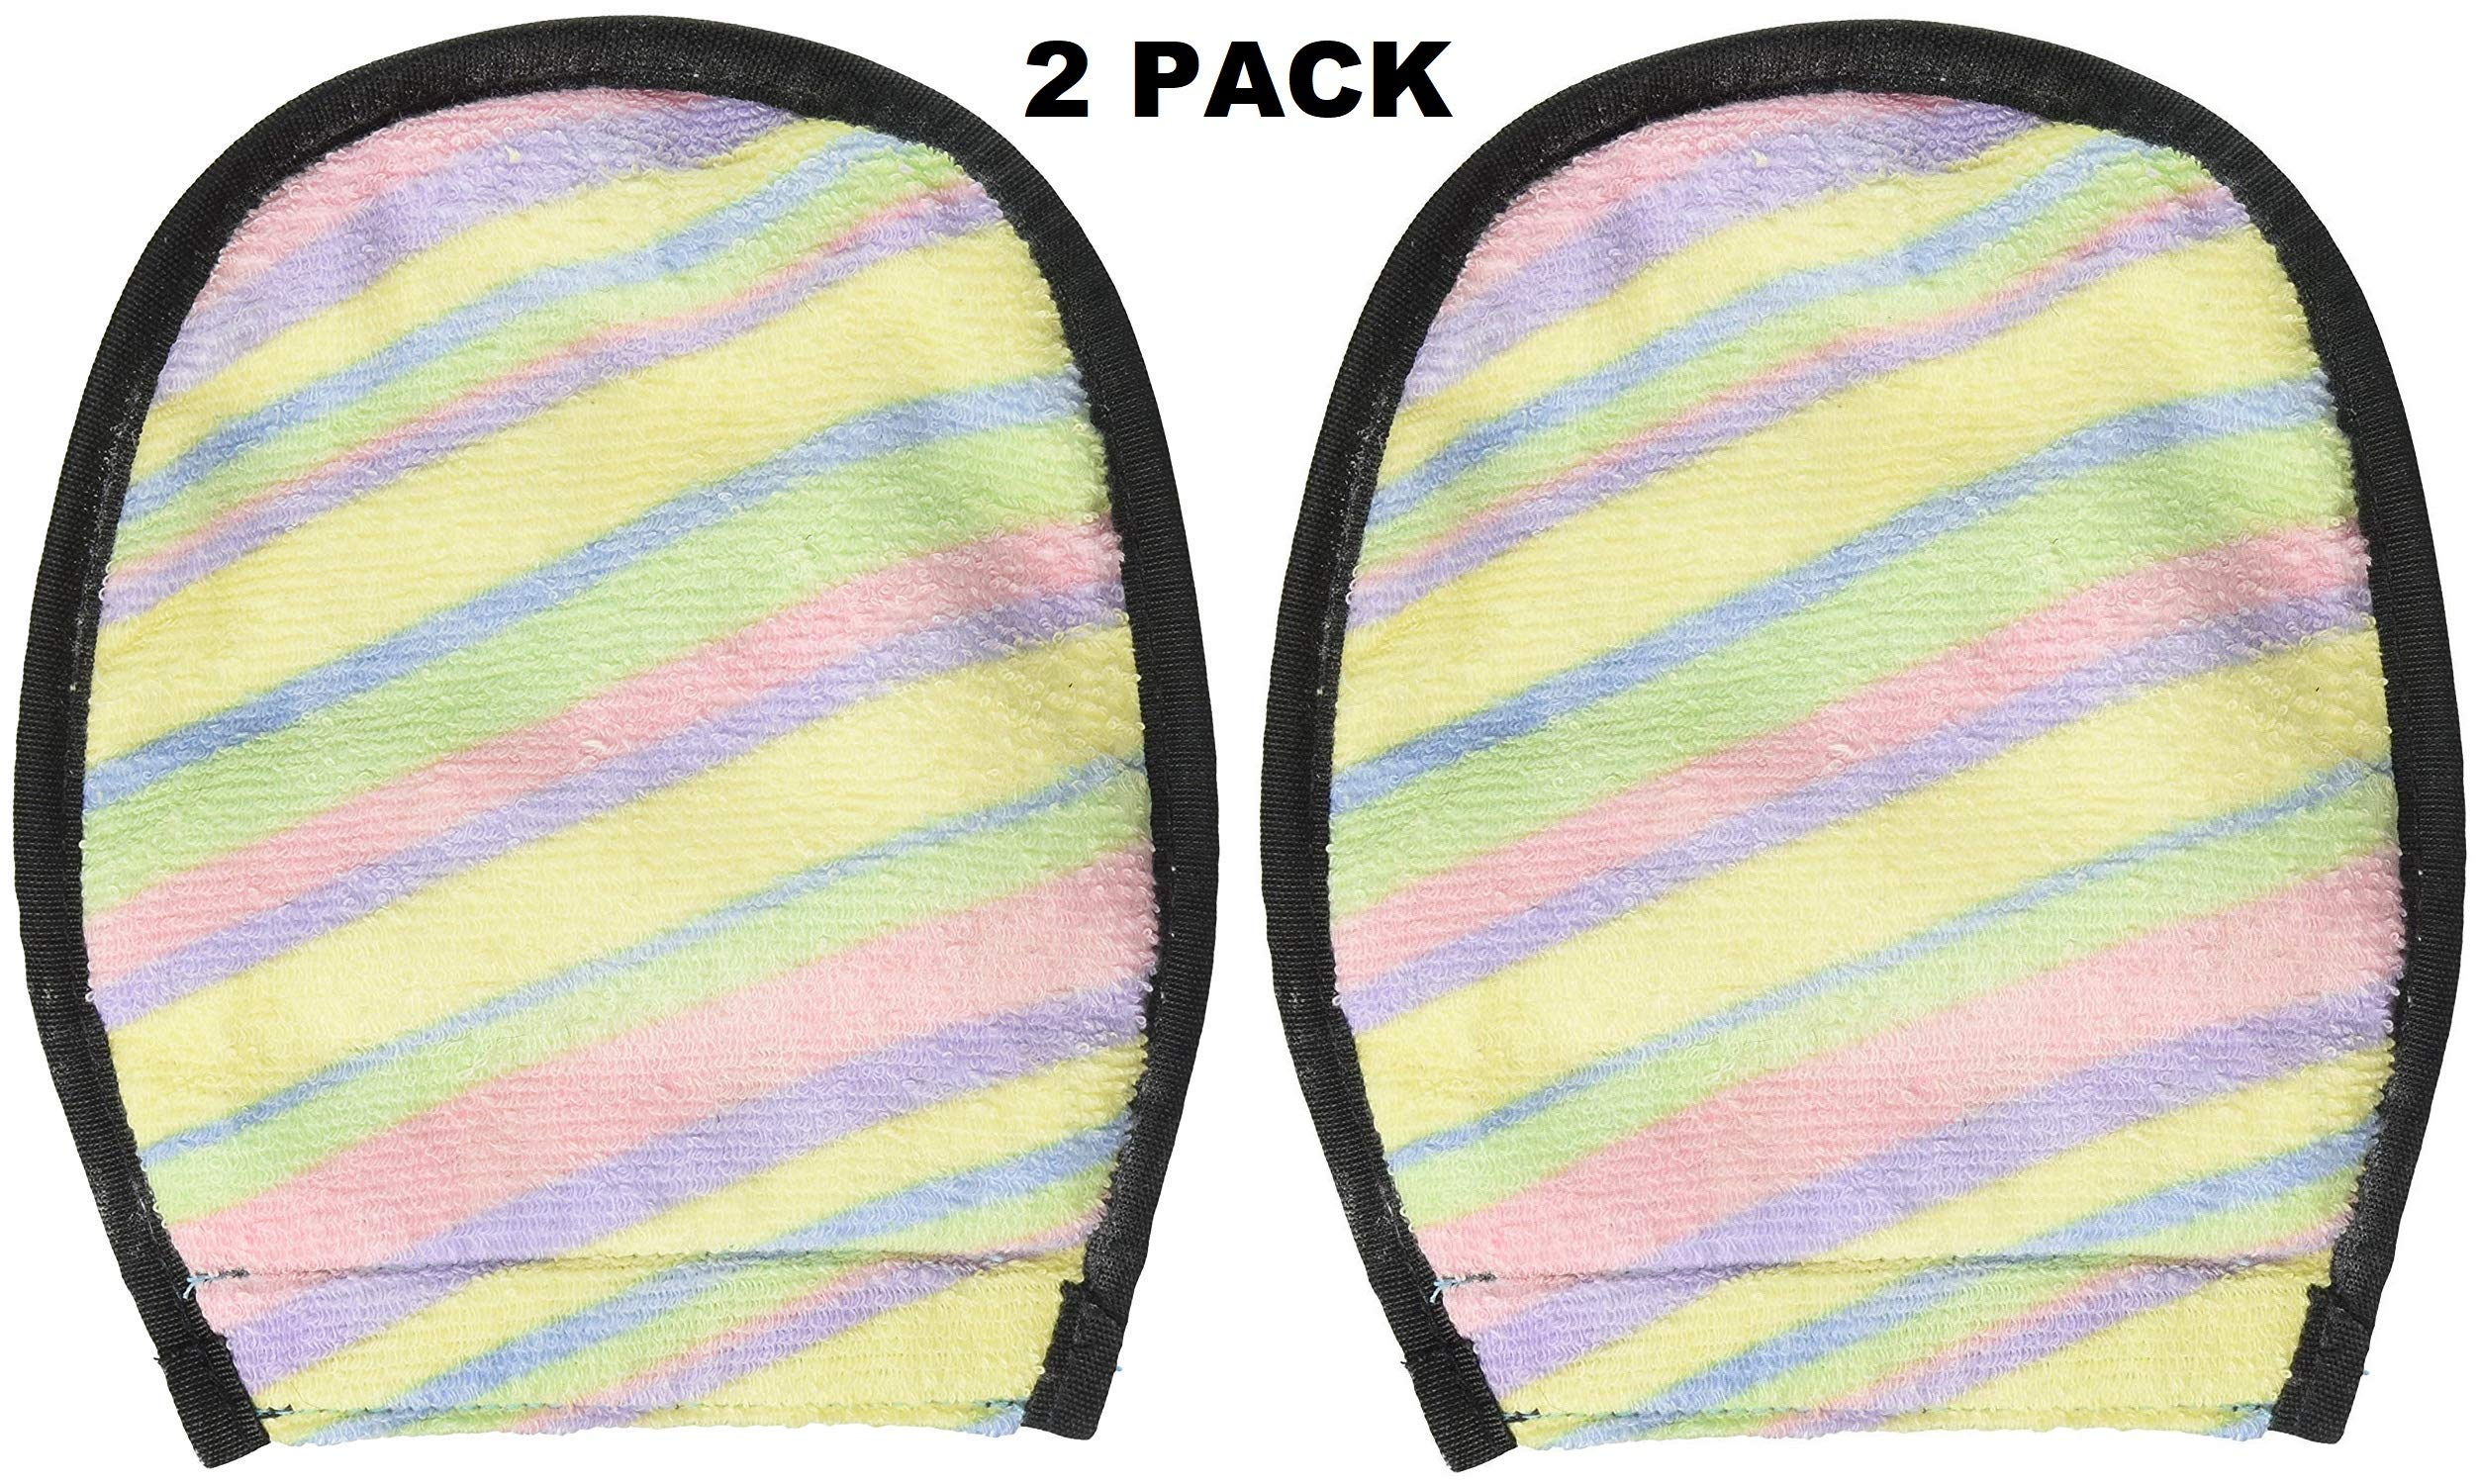 Water Sports Sand-Off! Sand Cleaner Wipe Off Mitt, Multi-Color, 2 Pack